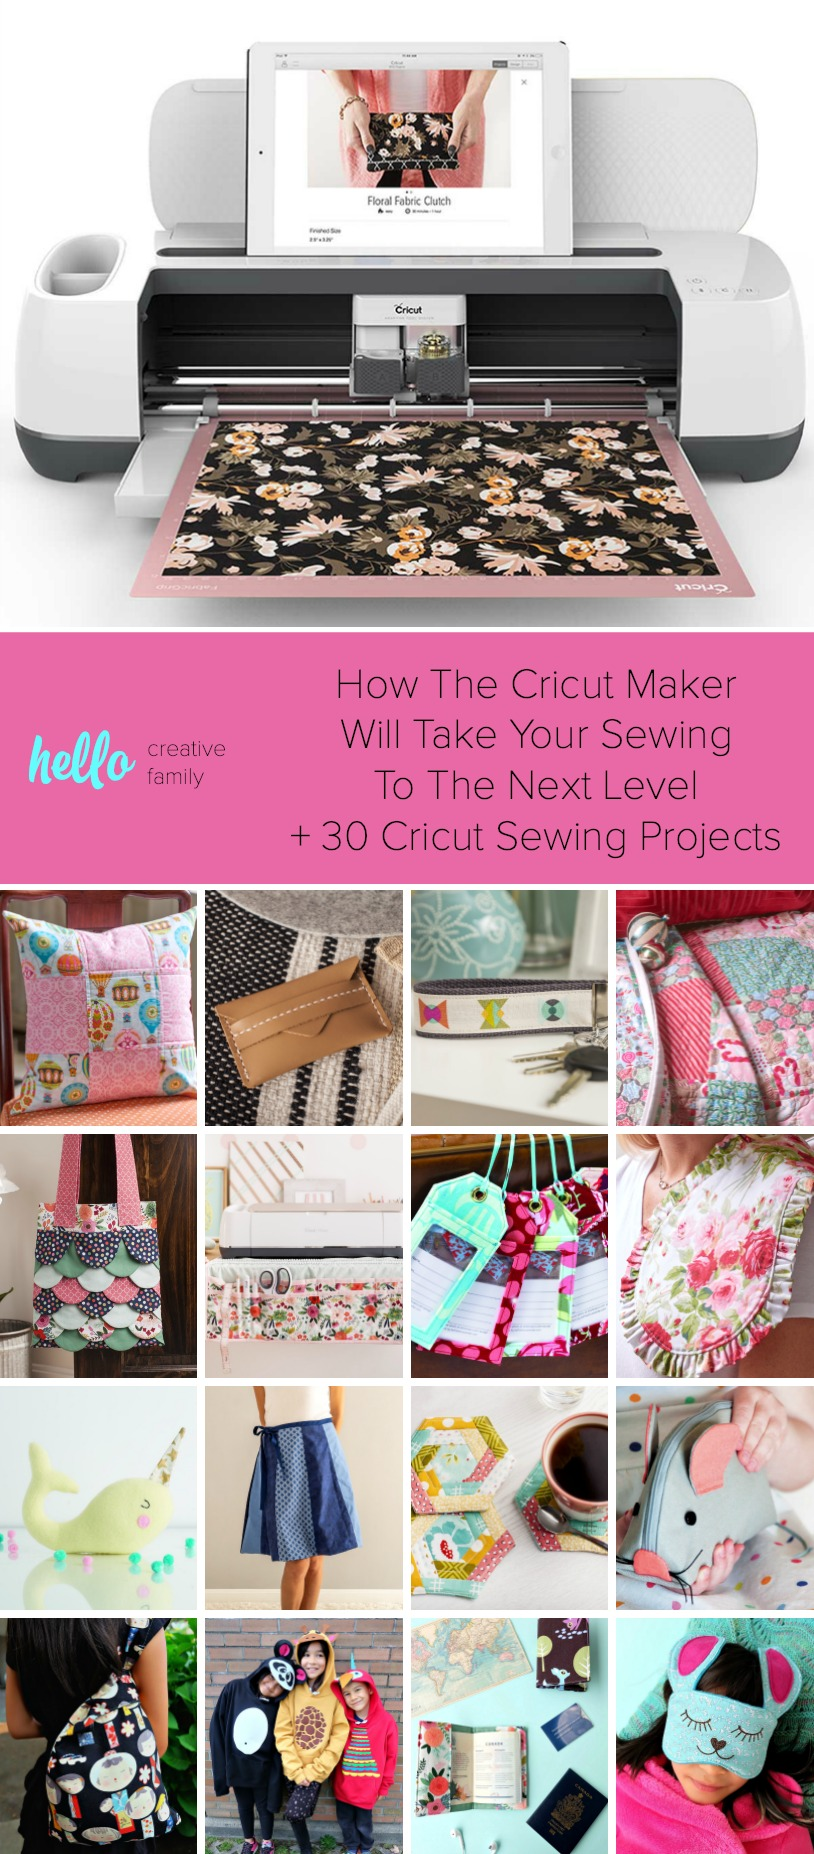 How The Cricut Maker Will Take Your Sewing To The Next Level + 30 Cricut Sewing Projects #Cricut #CricutMade #Sewing #CricutProjects